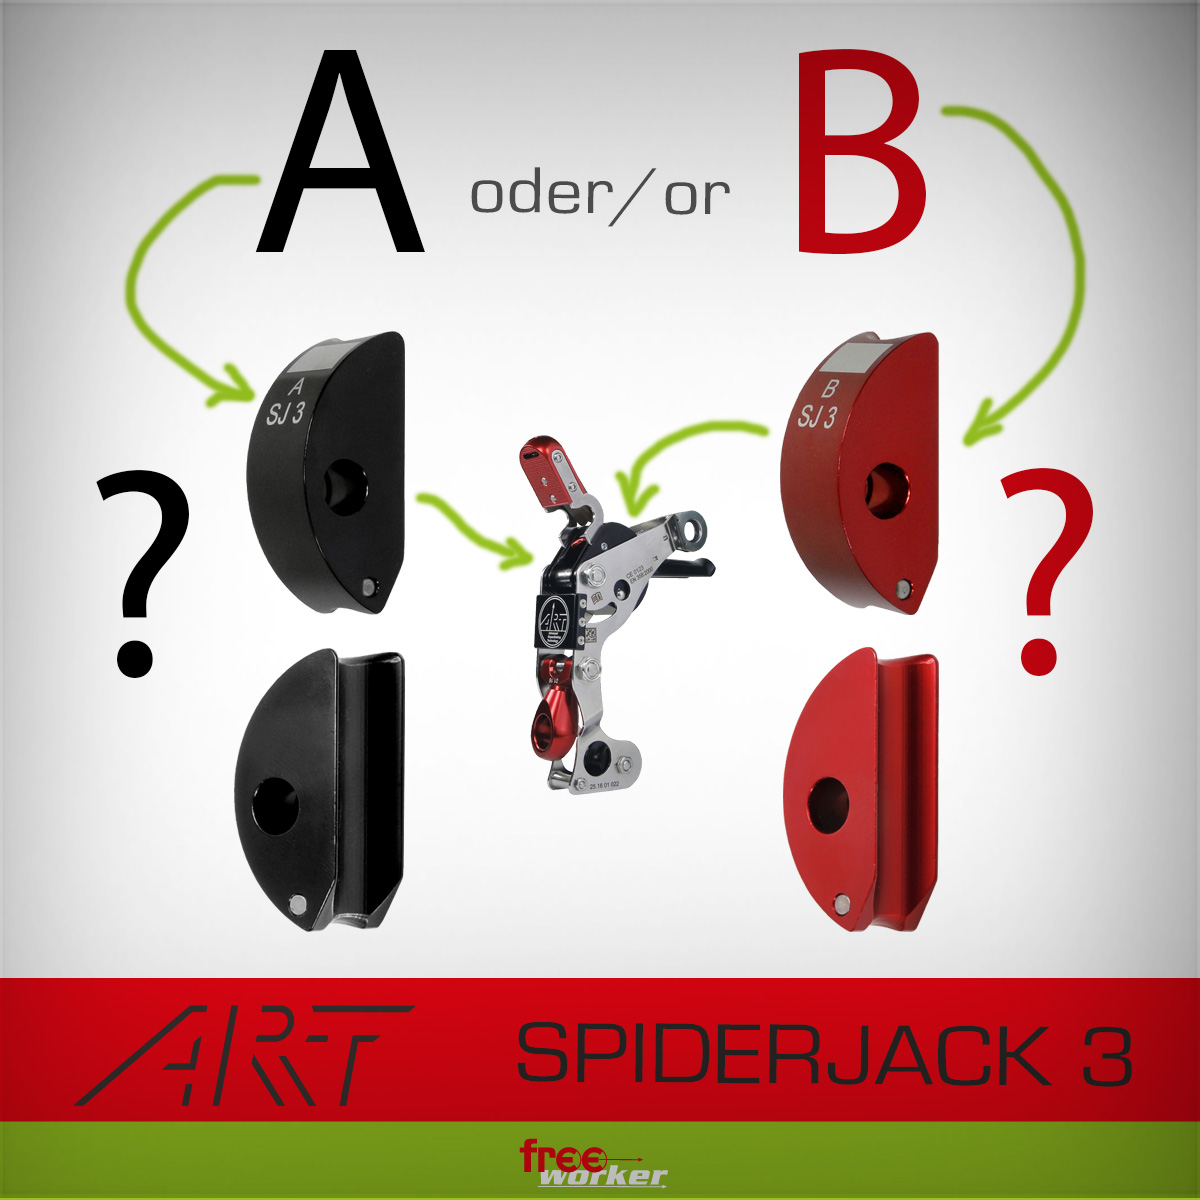 Clutch A oder B for the SpiderJack 3?